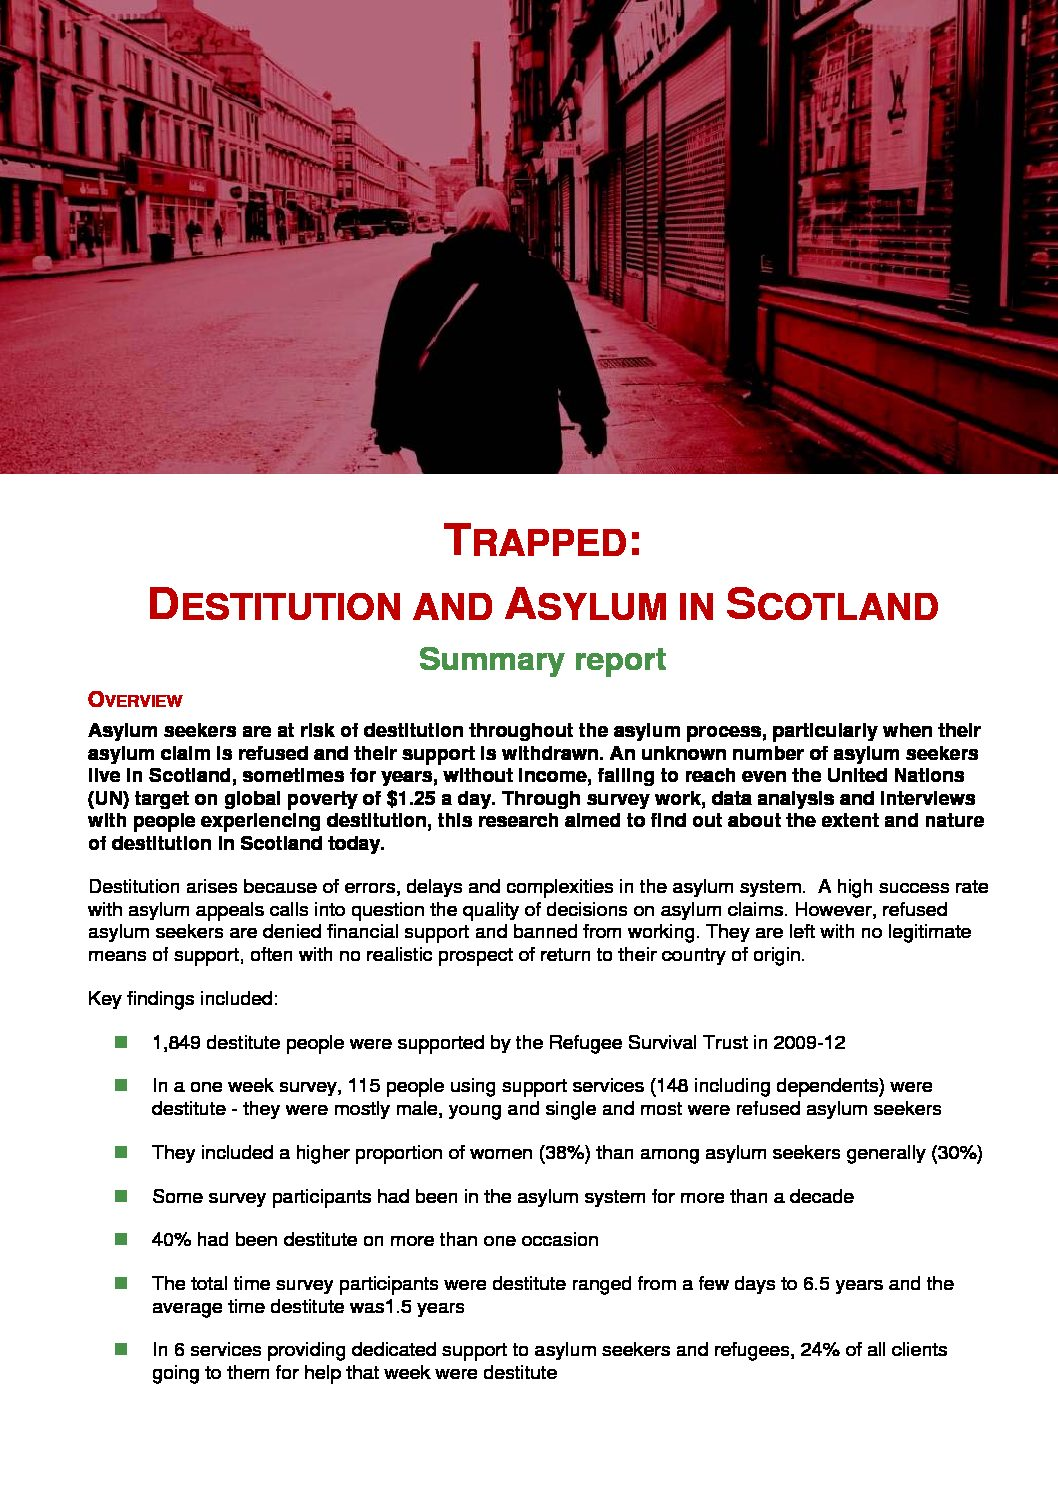 Trapped_-_destitution_and_asylum_summary-pdf